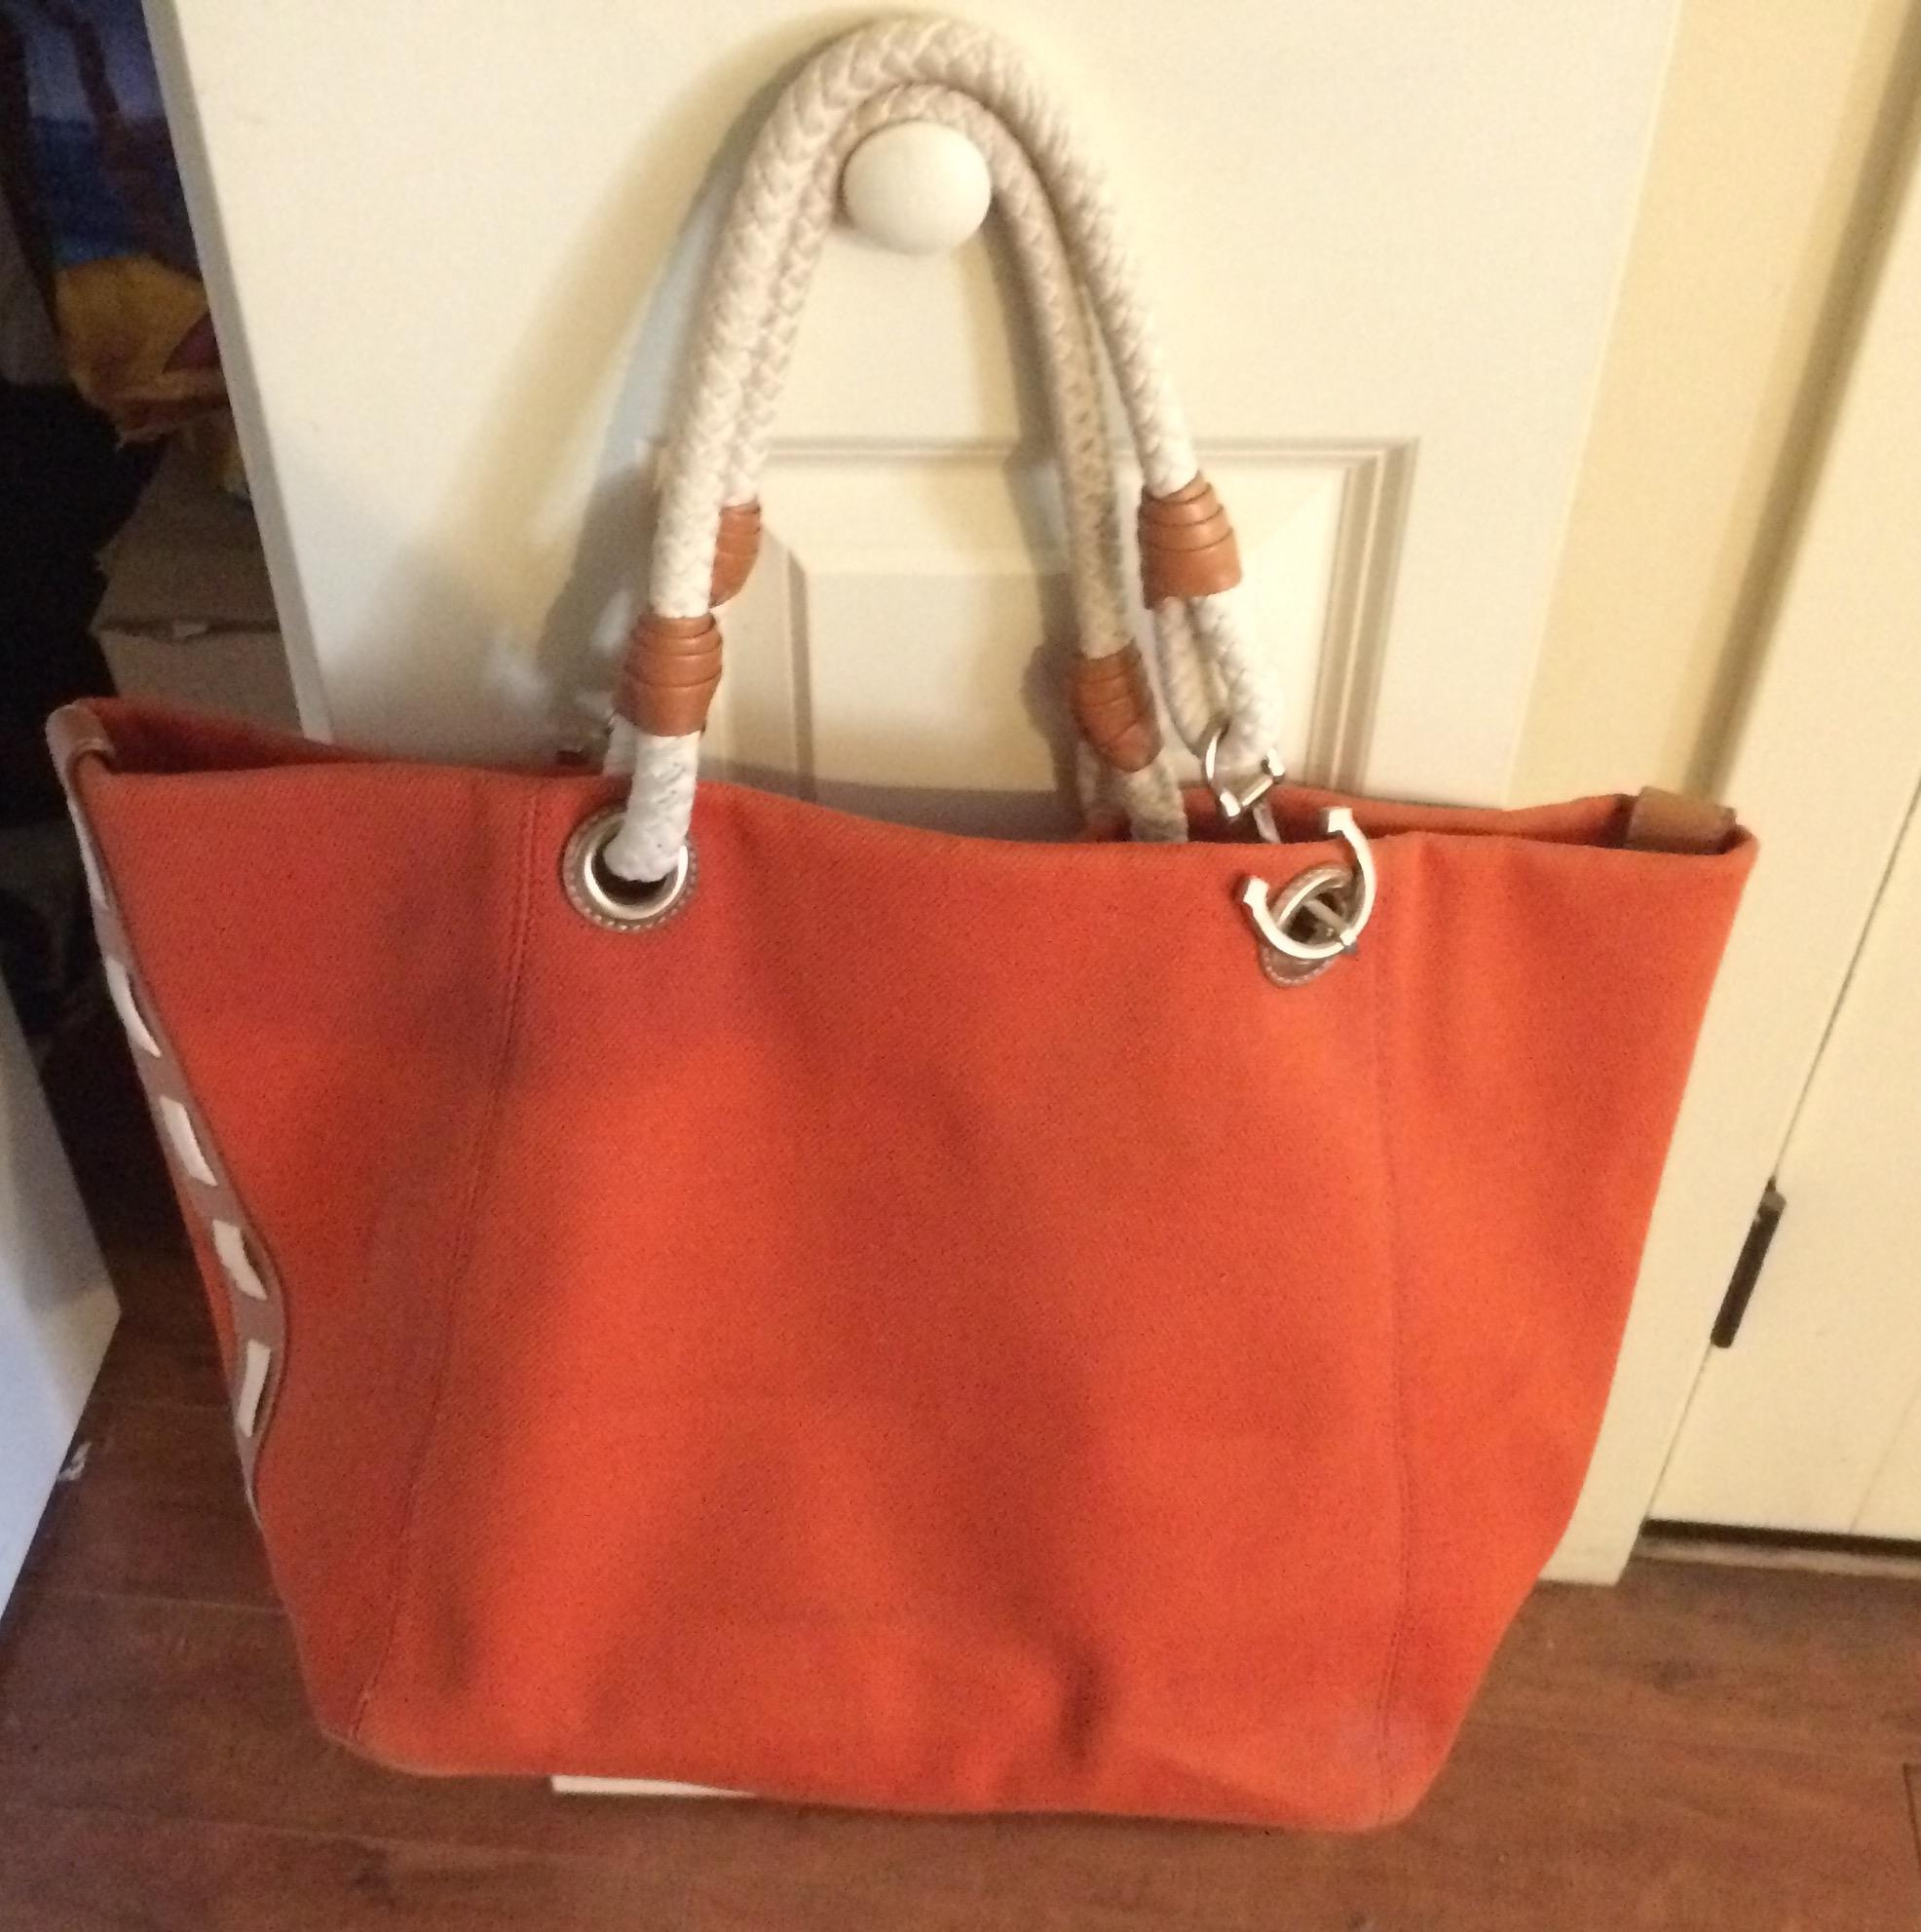 bb70d9efa6c2 ... hot michael kors tangerine orange beach bag. 1234 b7fb5 7bfef